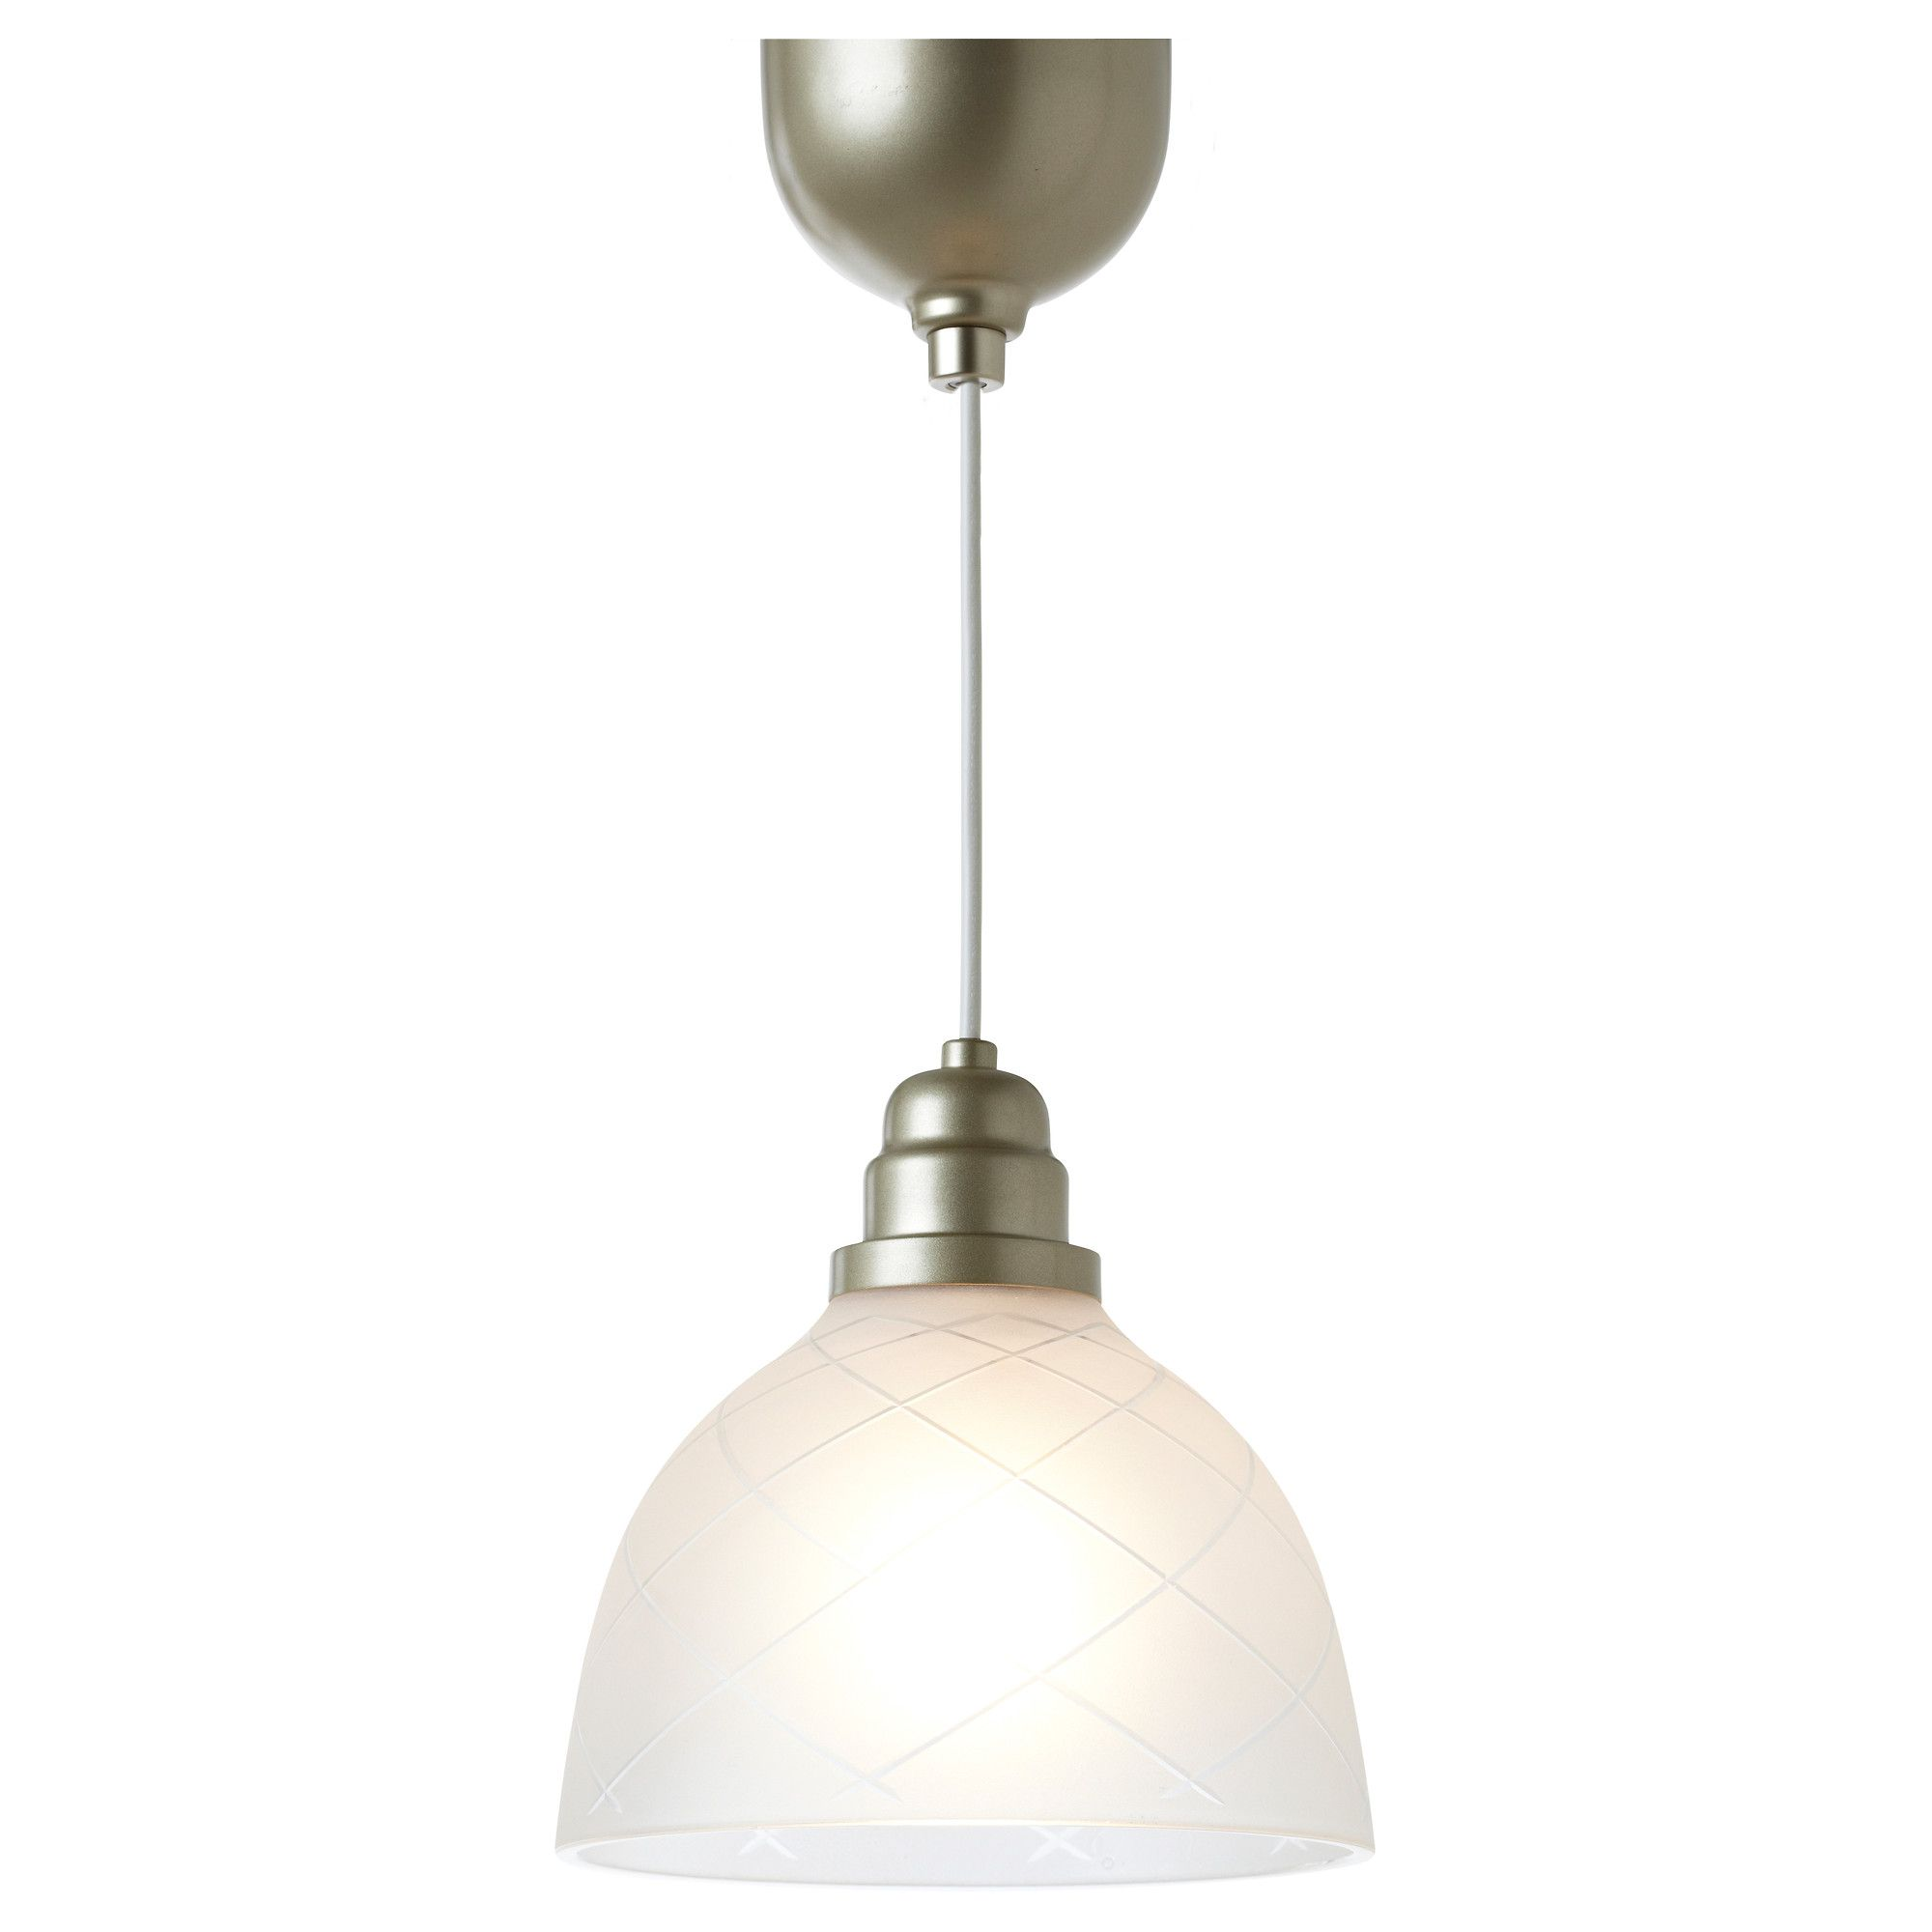 Kitchen Sink Pendant Light Top Rated Appliances Three Of These Pendants Hang In The Above